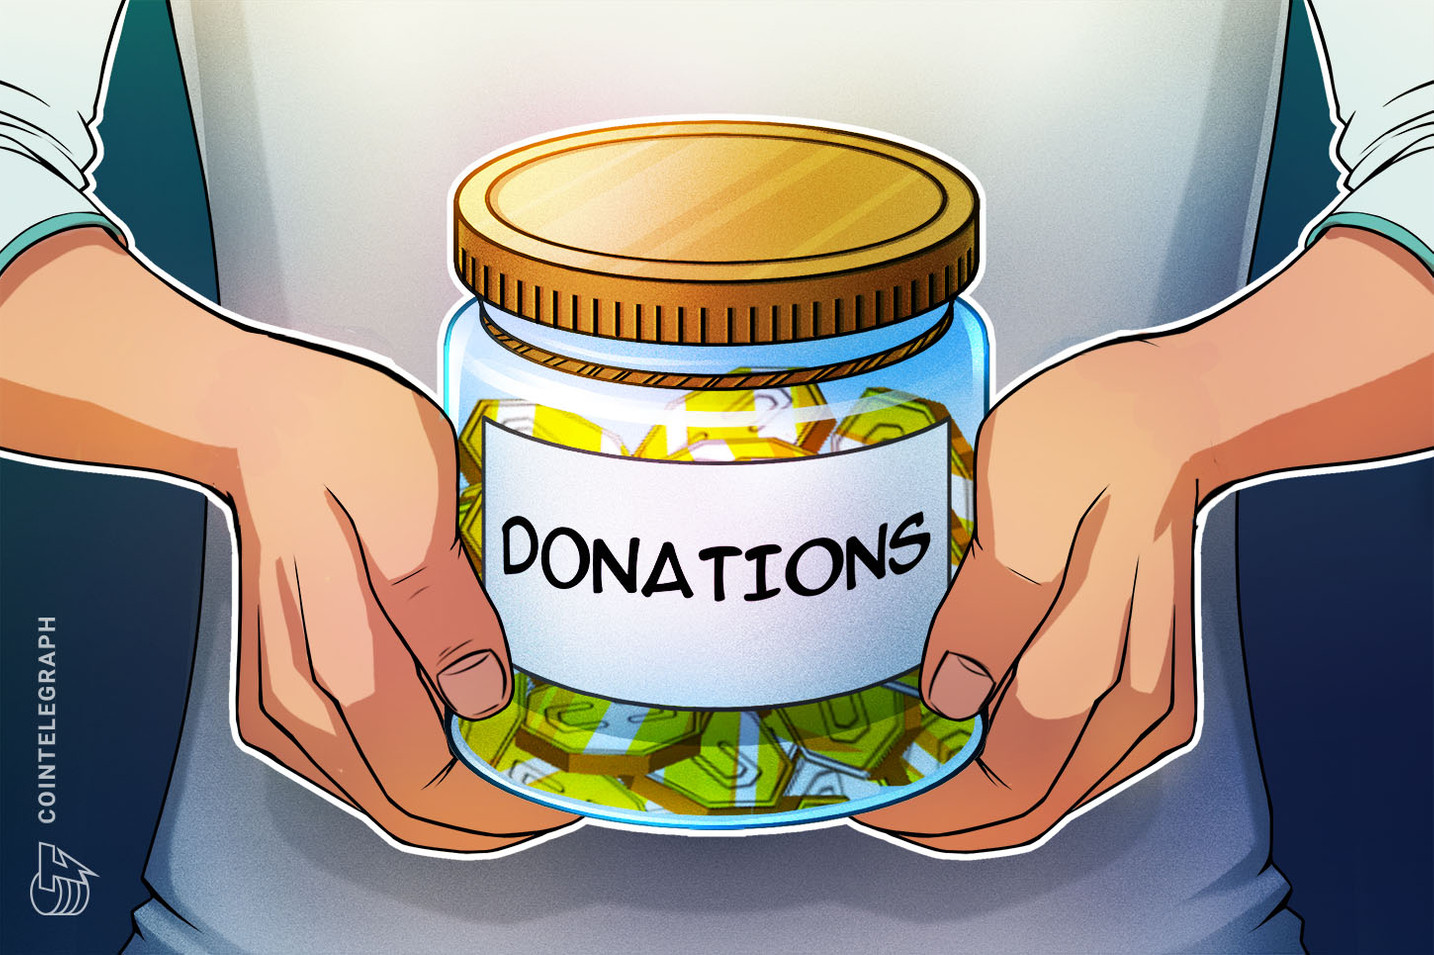 Following Grayscale's contribution, Kraken donates $100K to Coin Center